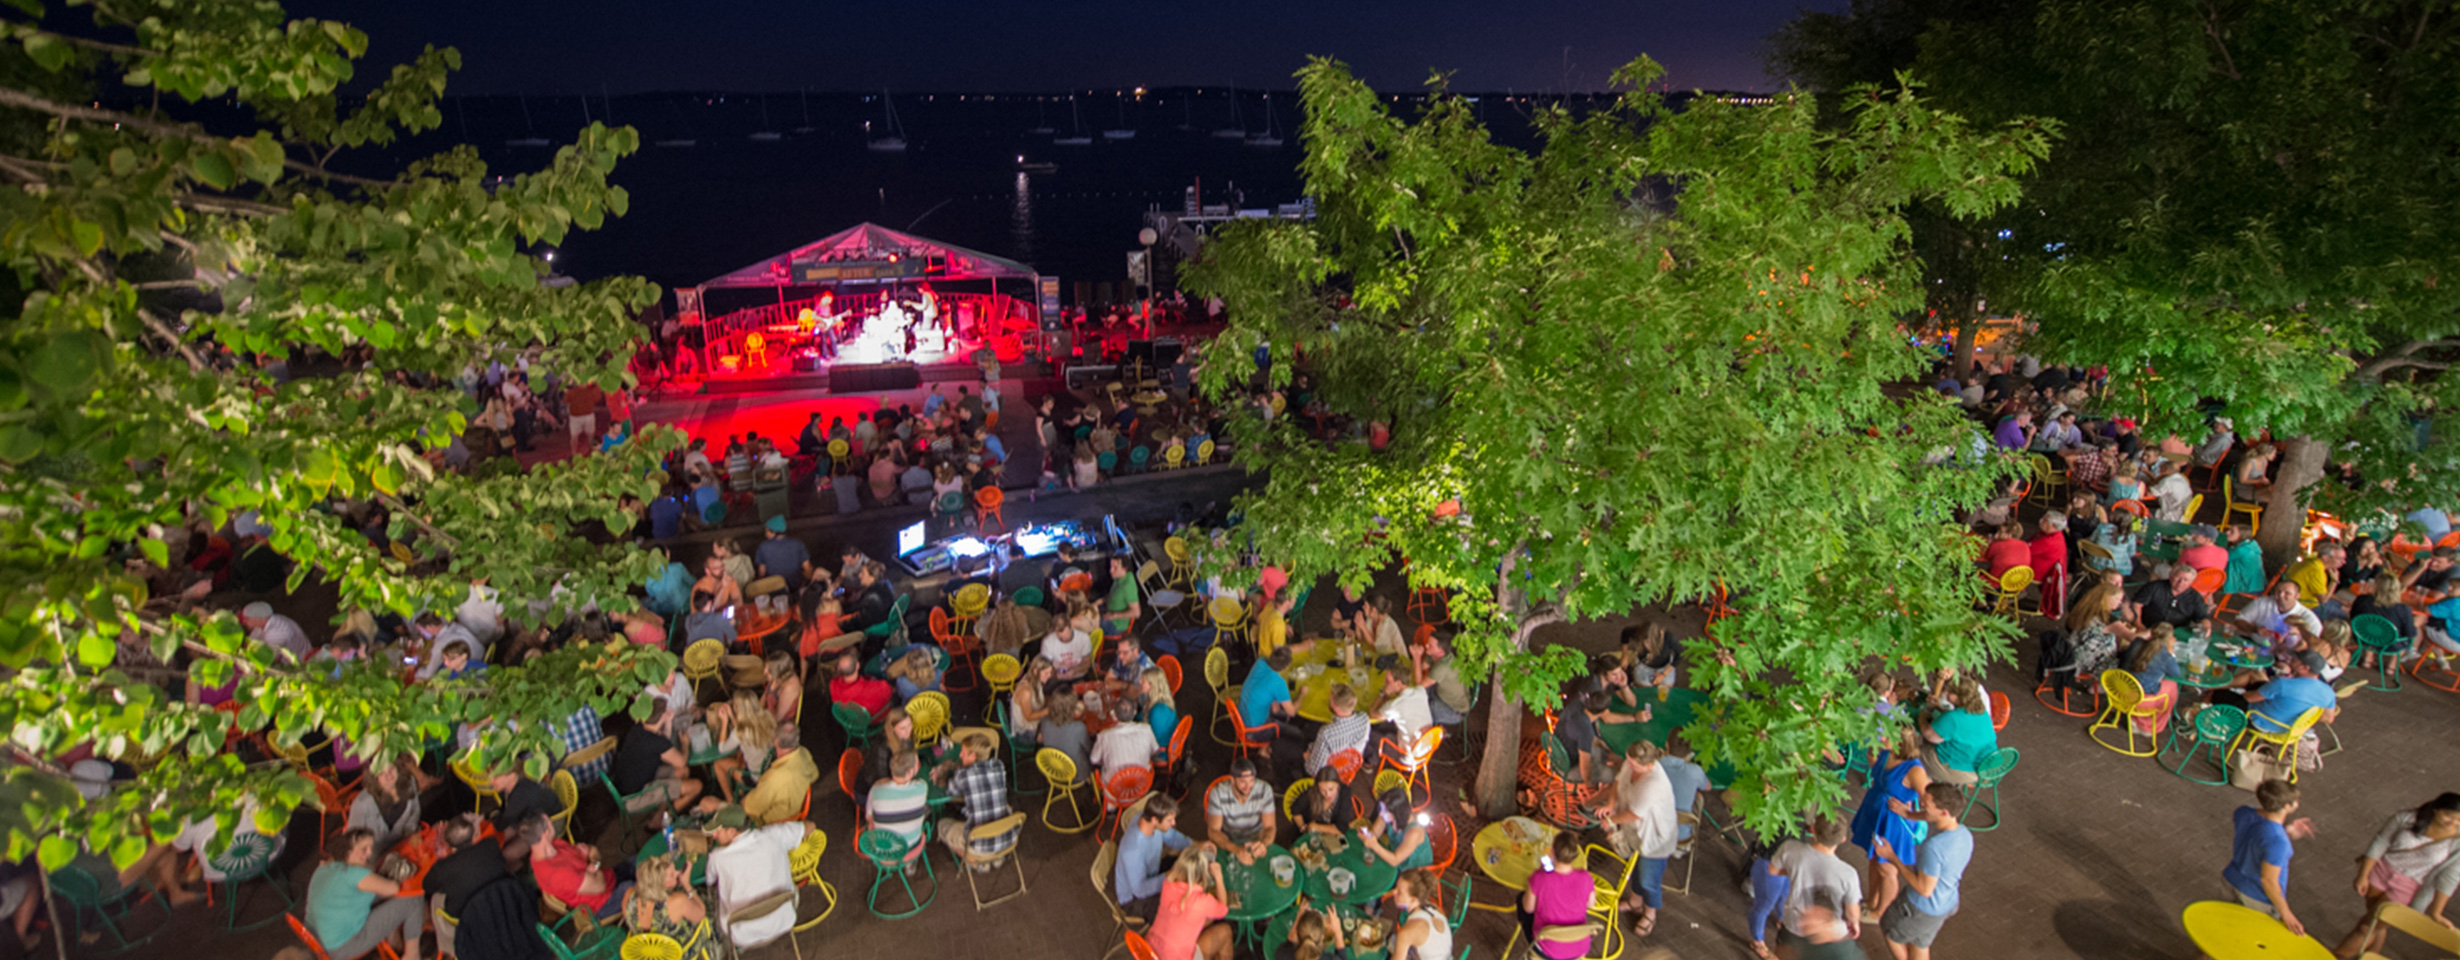 Music on Lake Mendota